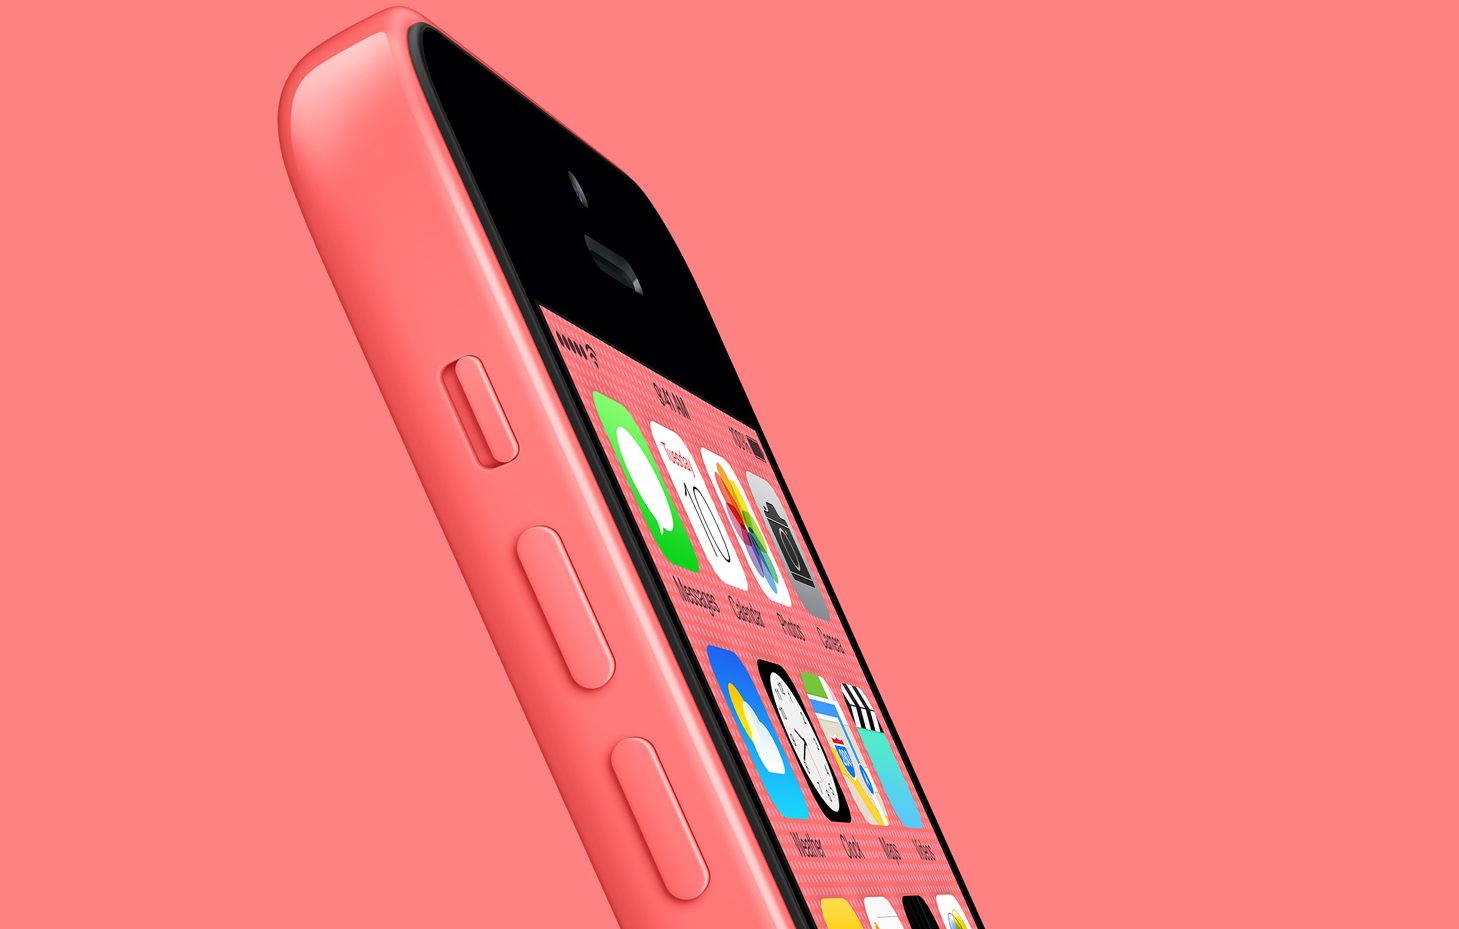 pink iPhone 5c pink background